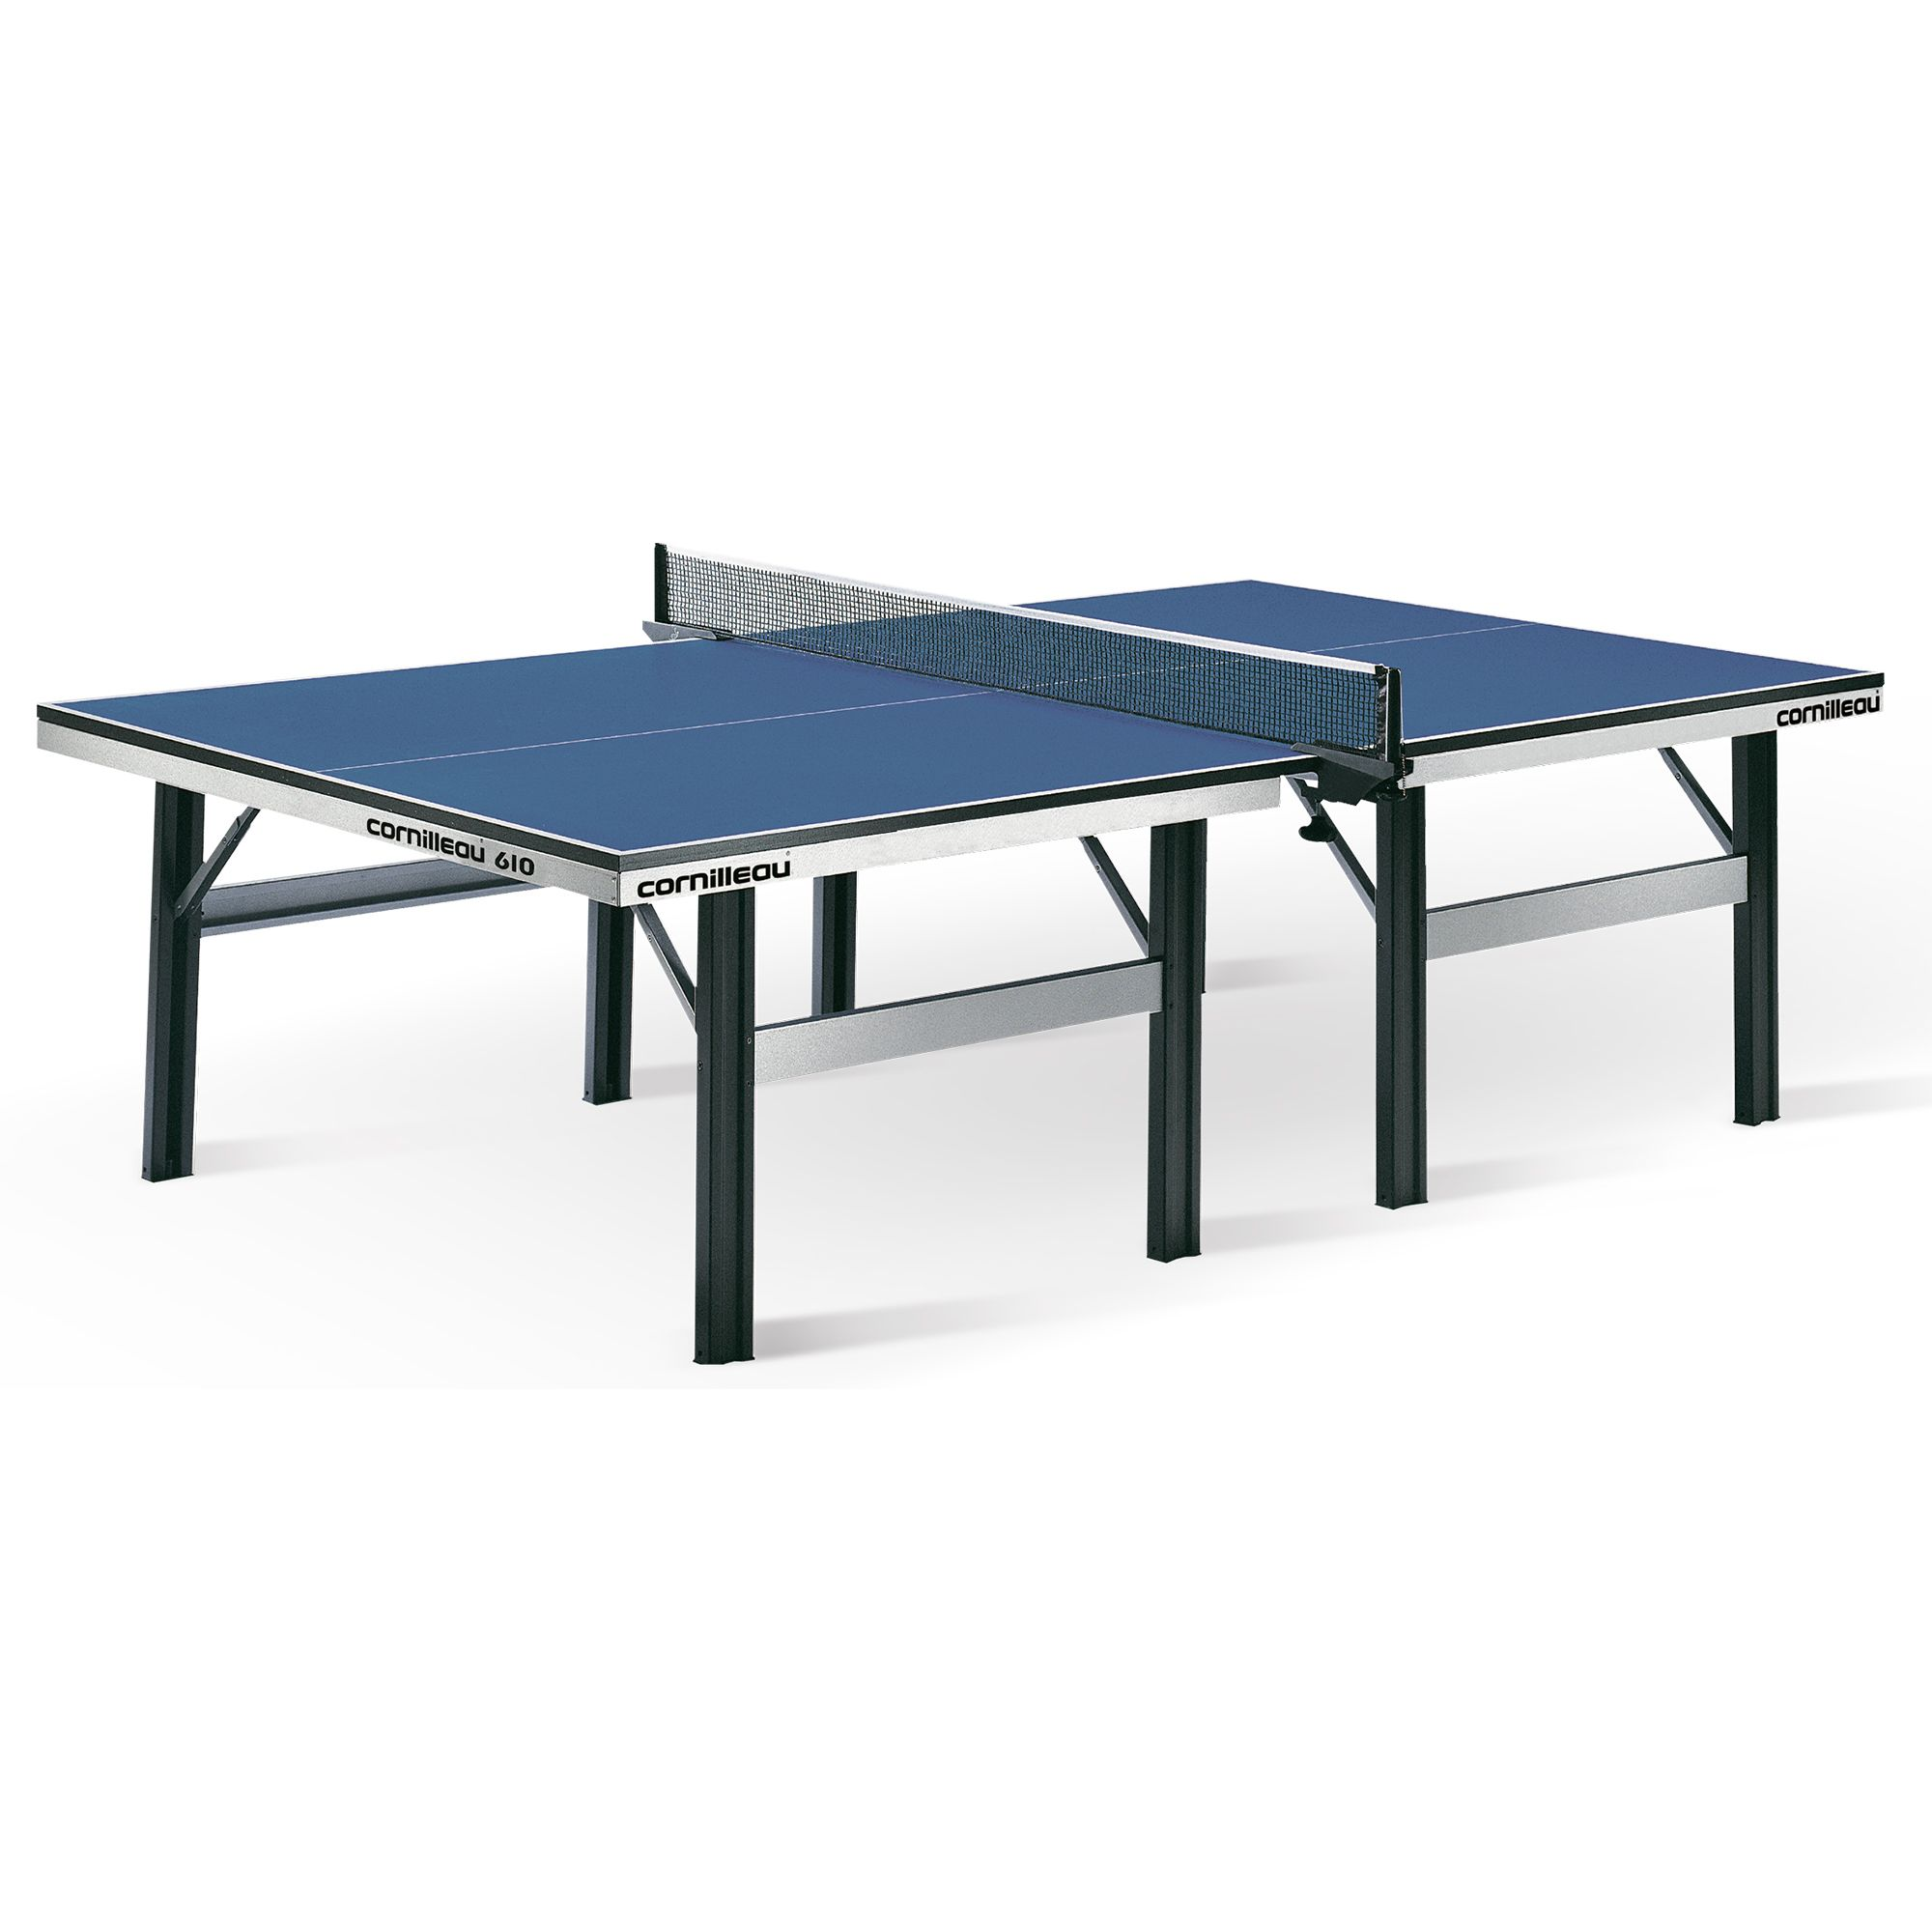 Cornilleau ittf competition 610 static table tennis table for Table tennis